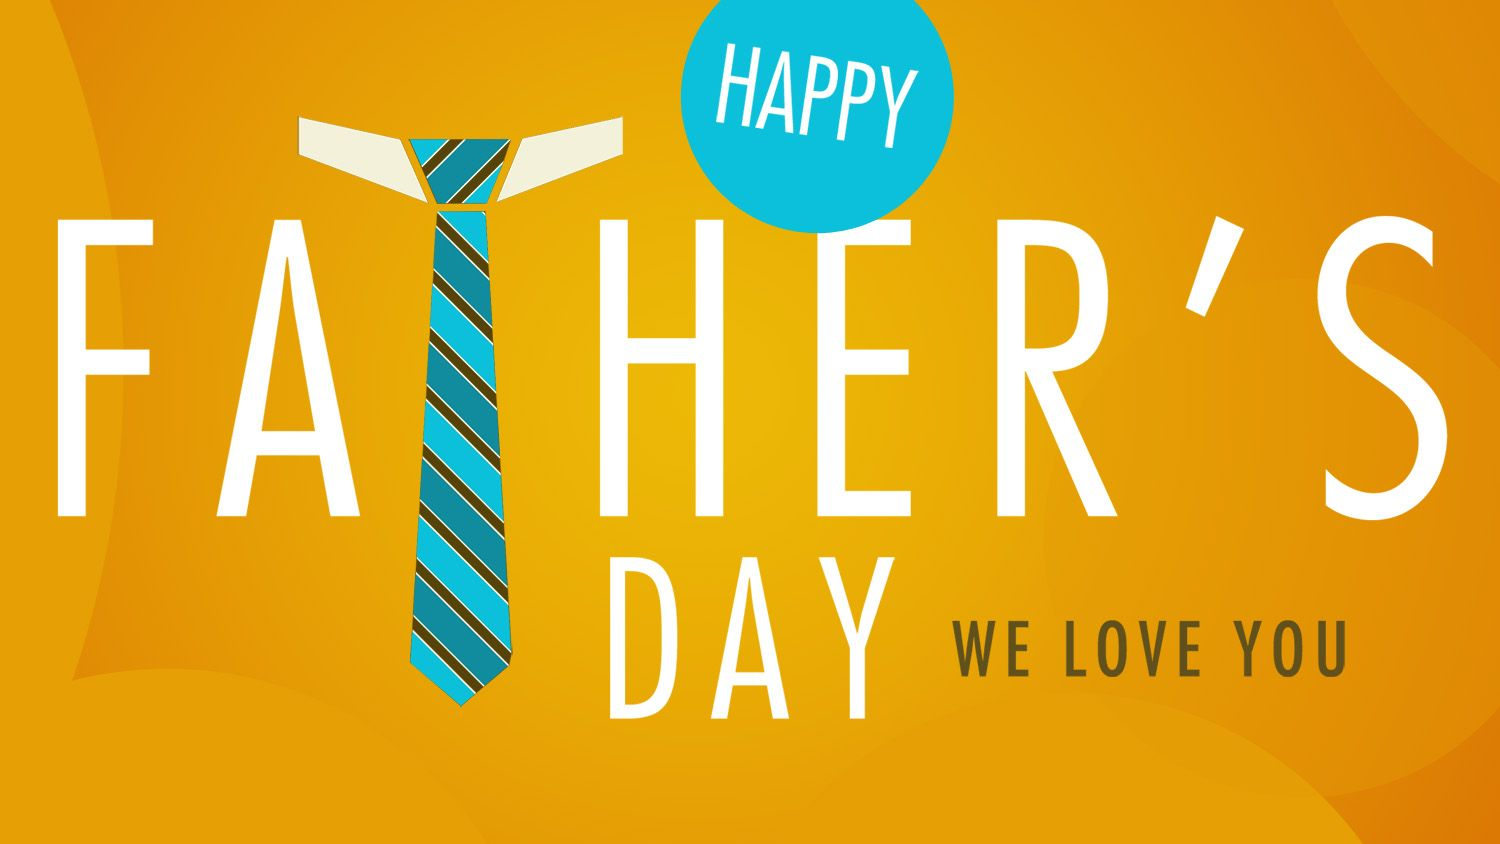 High Resolution Wallpaper | Father's Day 1500x844 px